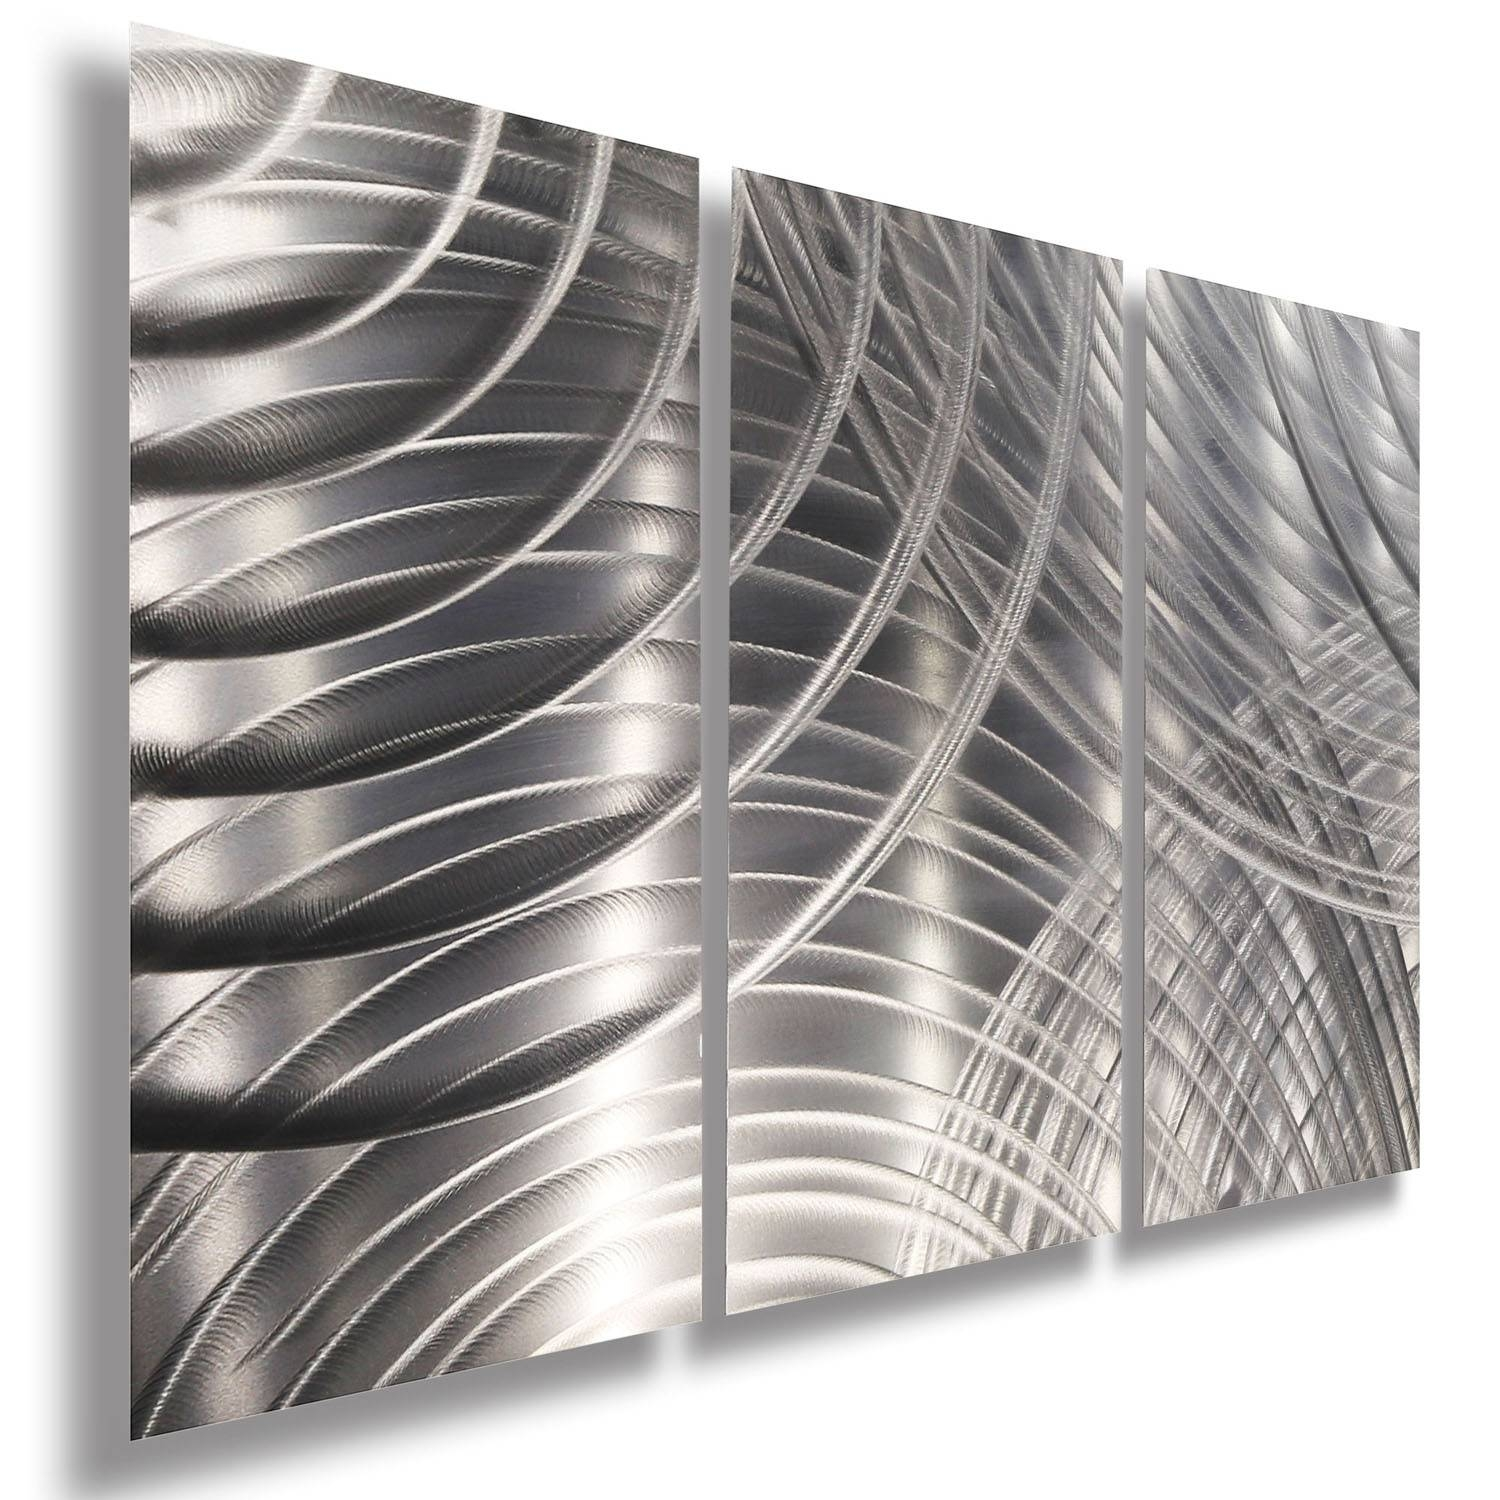 Equinox Ii 3p – All Silver 3 Panel Metal Wall Art Accentjon Pertaining To 2017 Black Silver Wall Art (View 9 of 20)